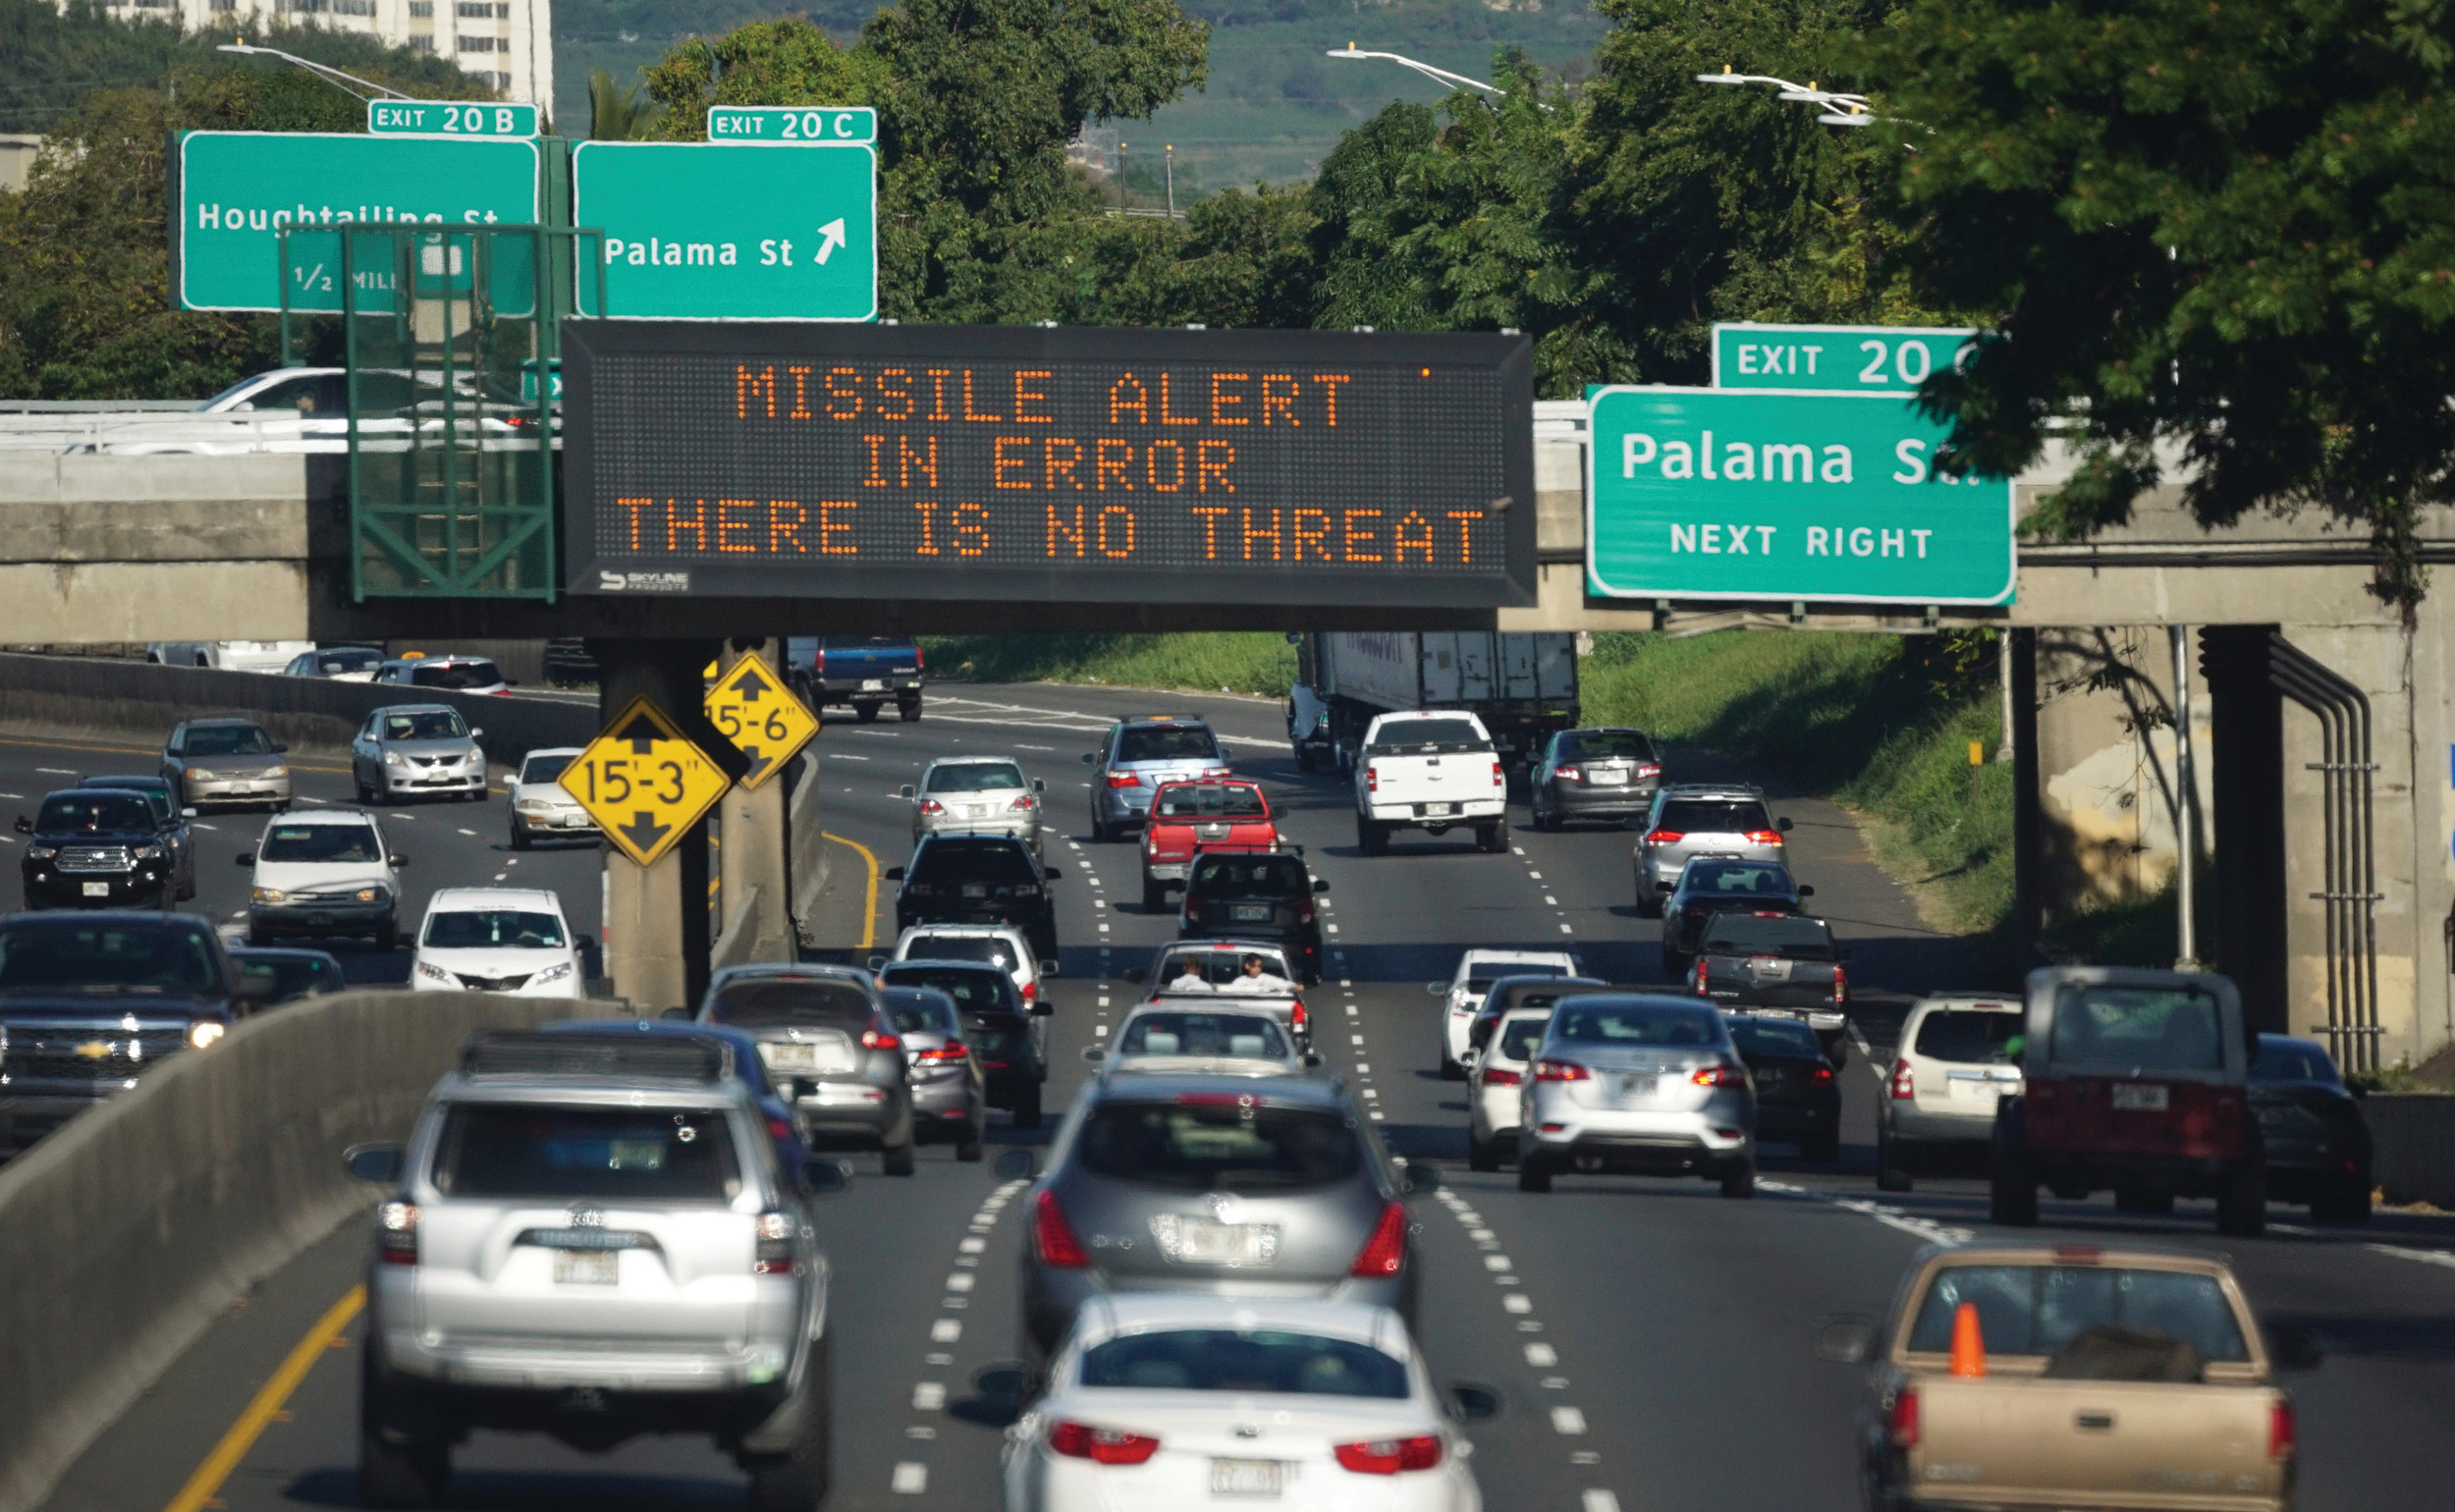 ANTHONY QUINTANO / CIVIL BEAT VIA AP